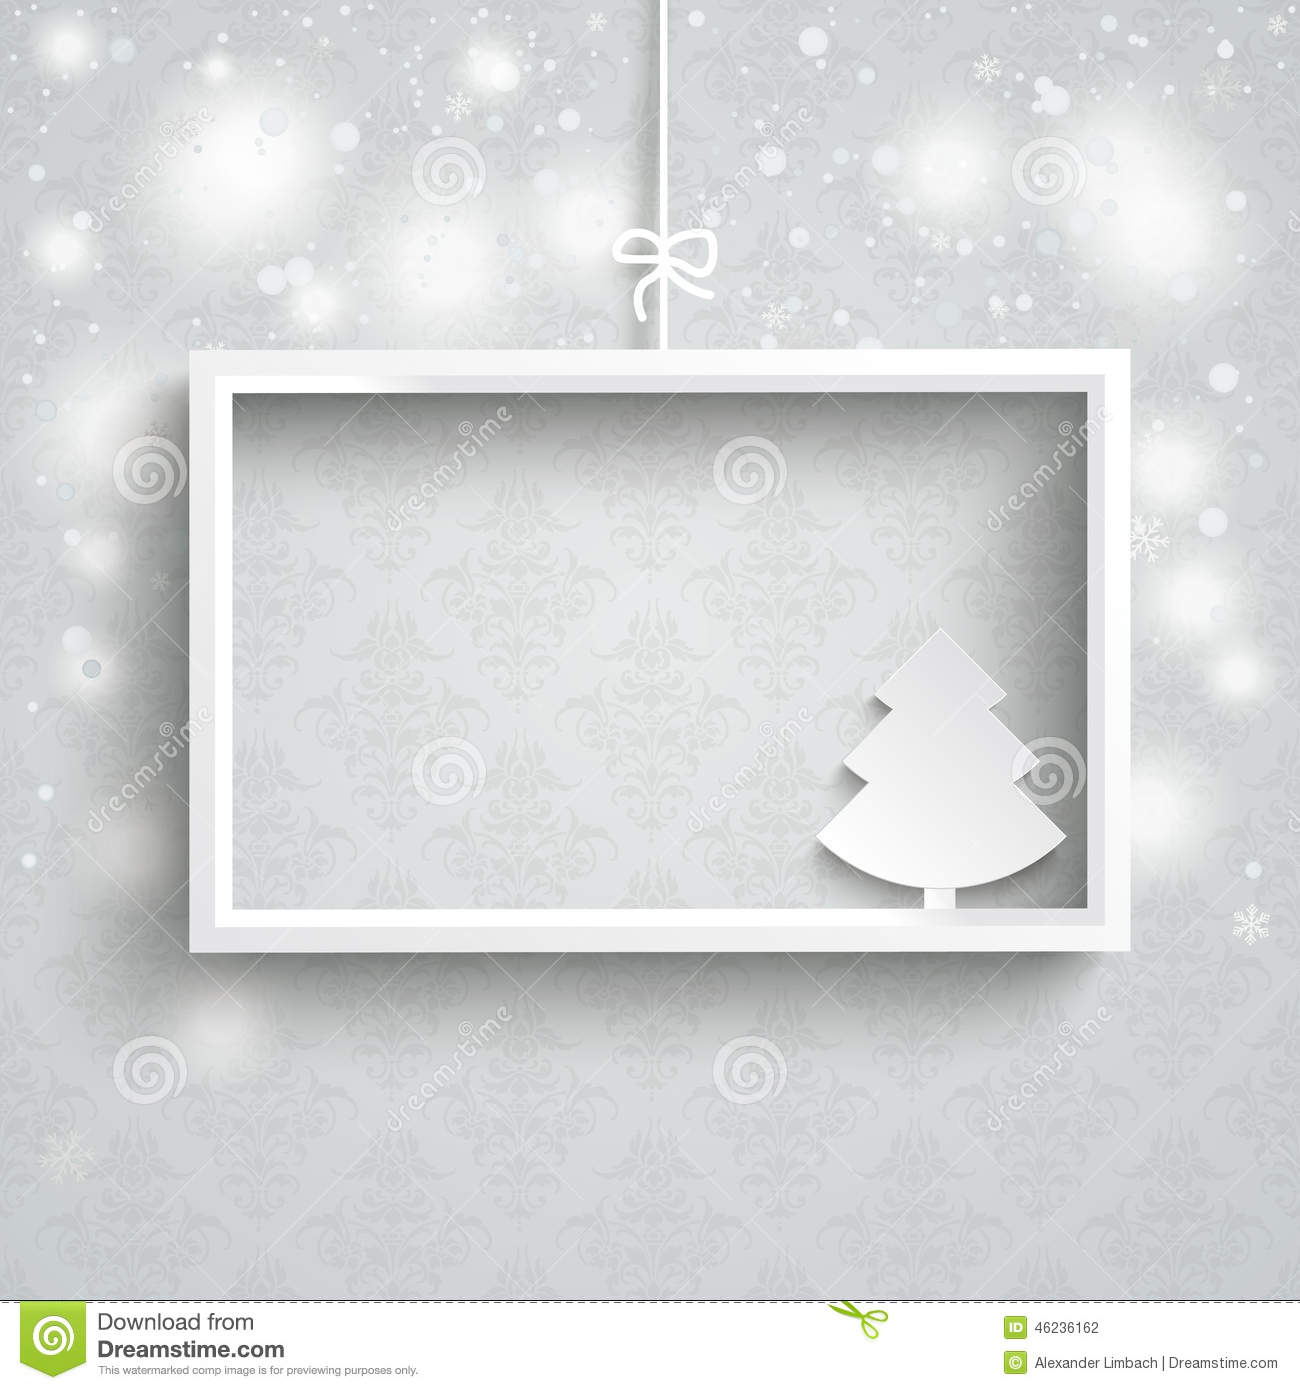 Snow Background Ornaments White Frame Christmas Tree Illustration ...